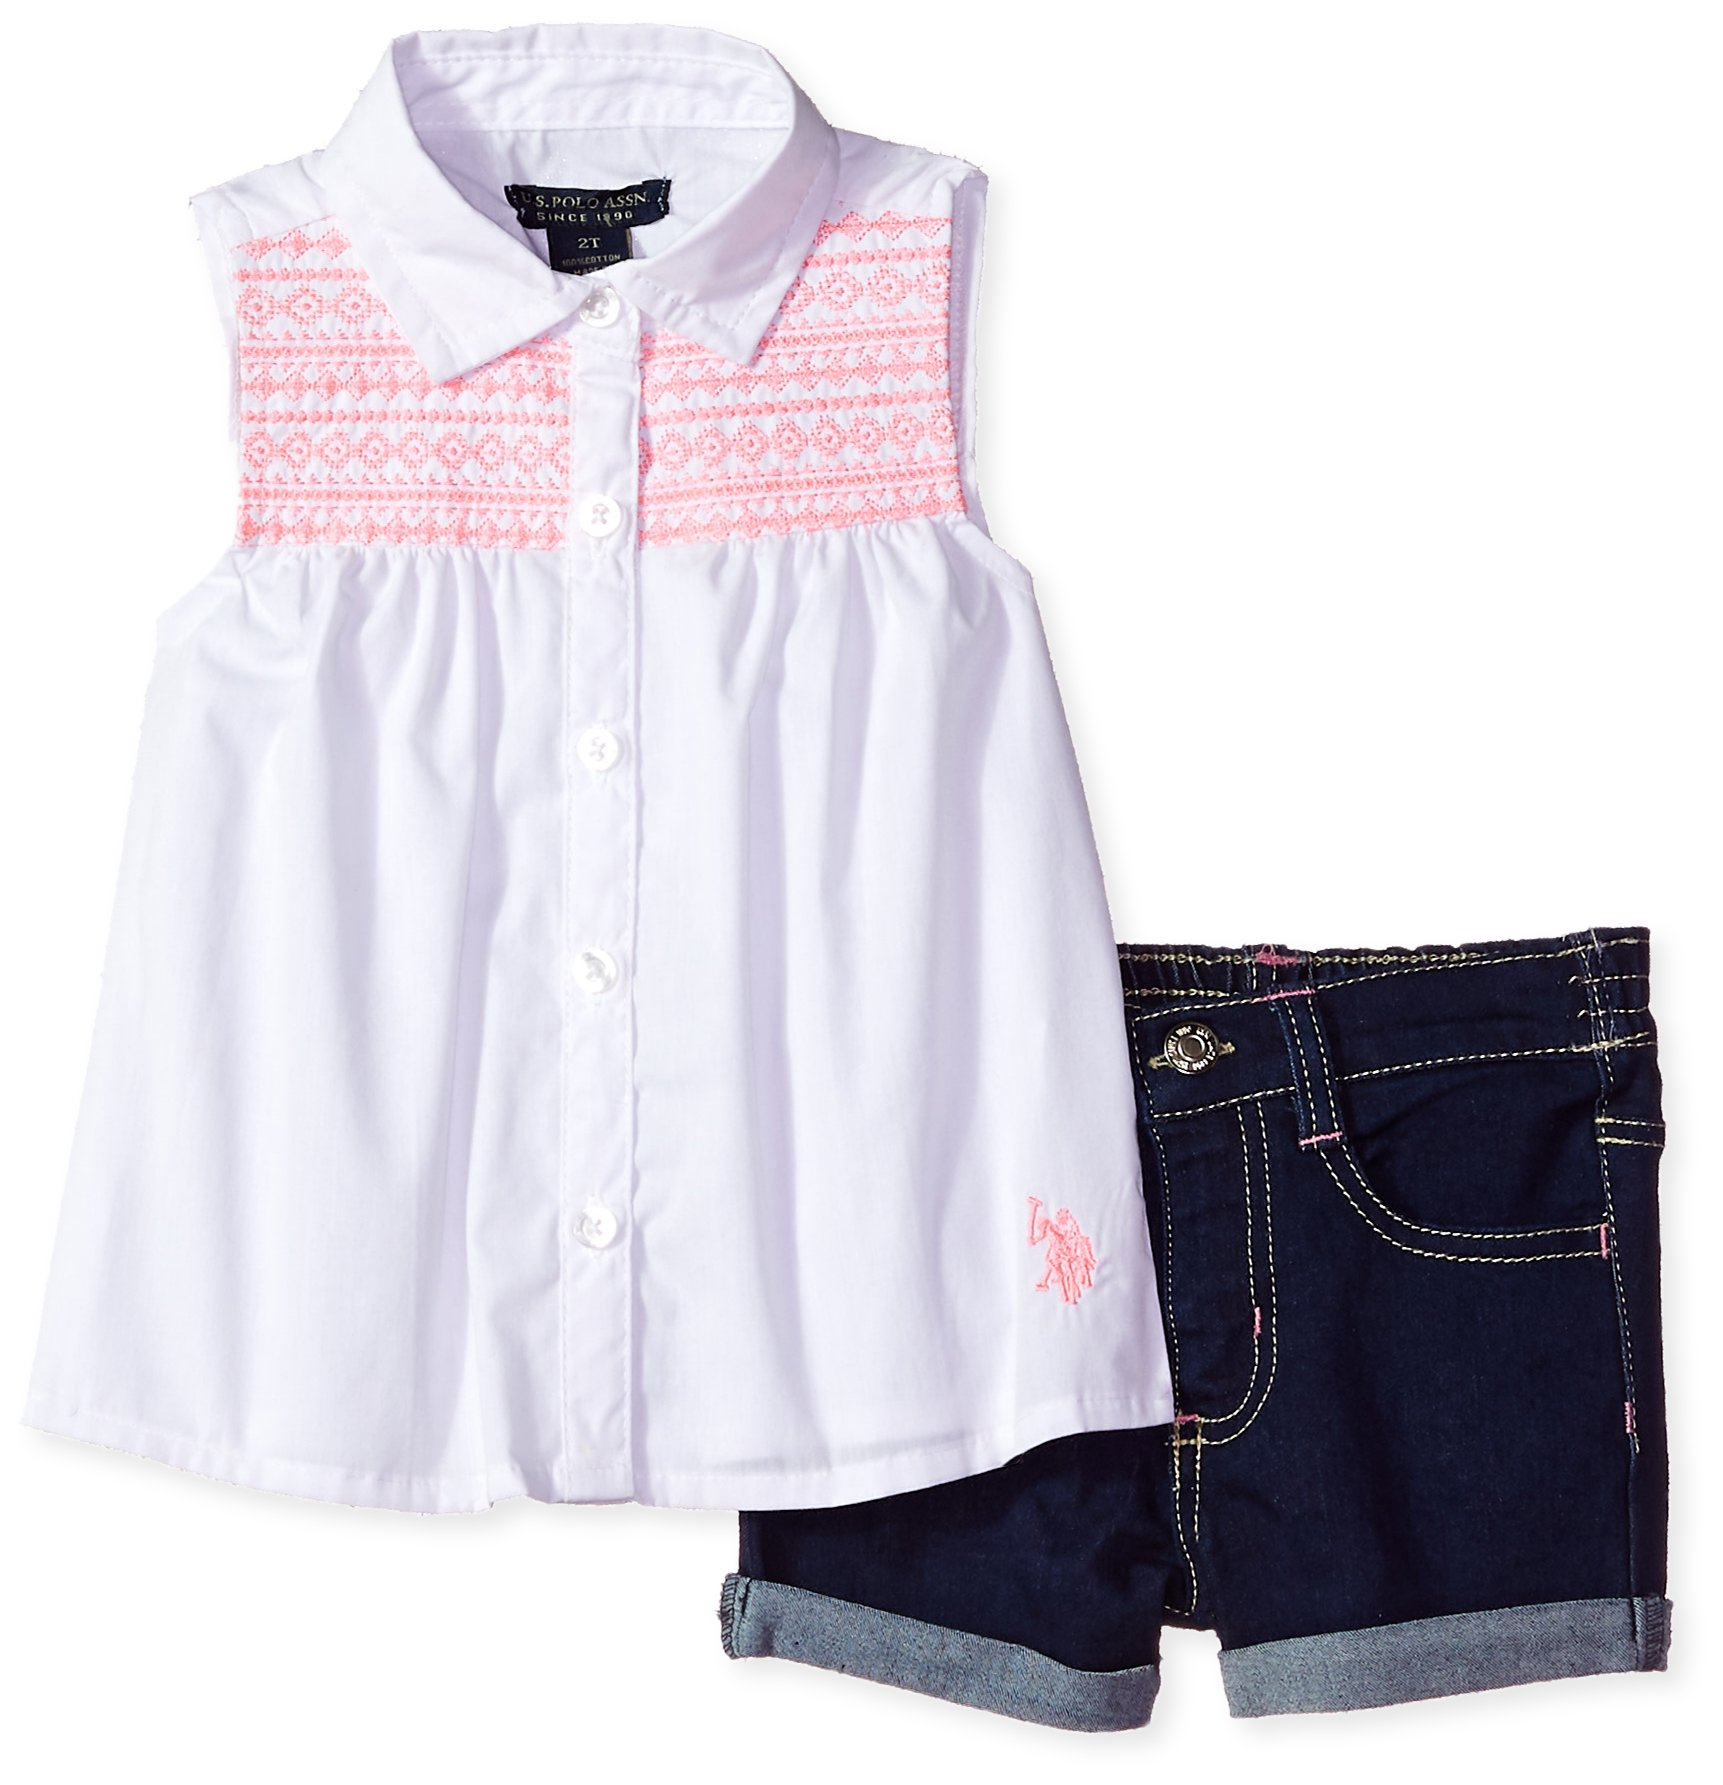 U.S. Polo Assn.. Toddler Girls' Fashion Top and Short Set, Sleeveless Button Front Pink Embro Denim Short White, 4T